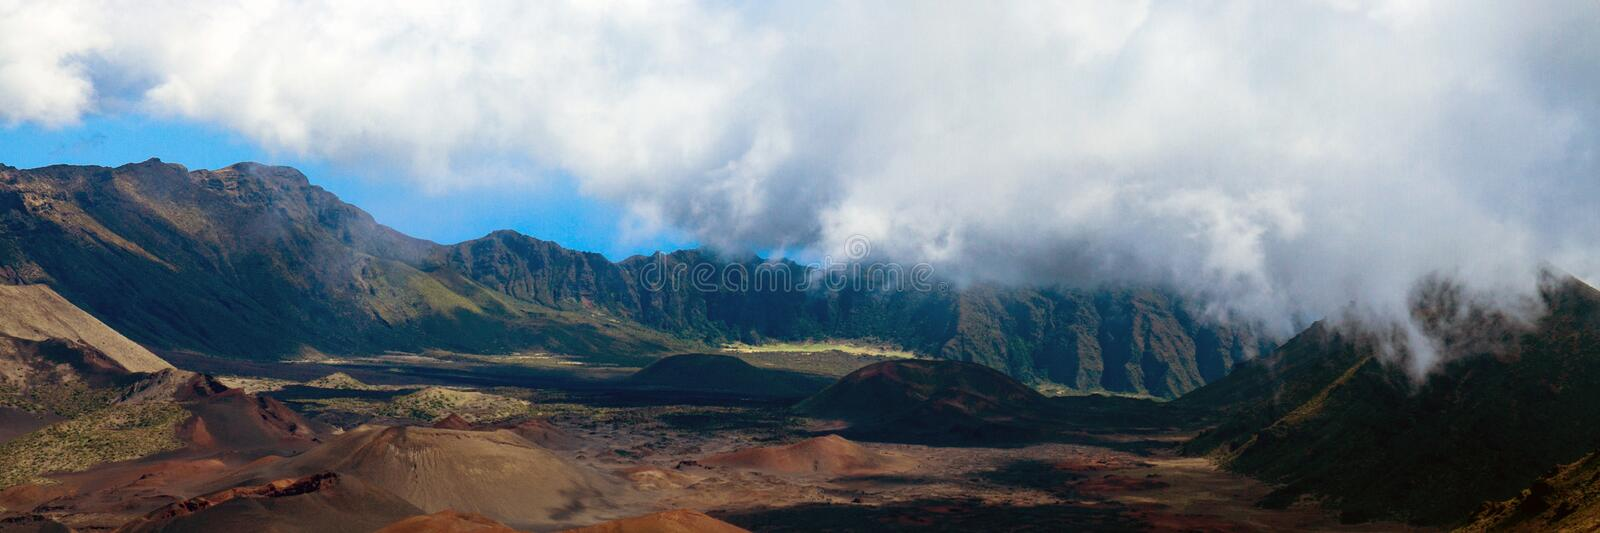 Panorama of the volcanic crater and caldera at Haleakala National Park on the island of Maui in Hawaii royalty free stock image